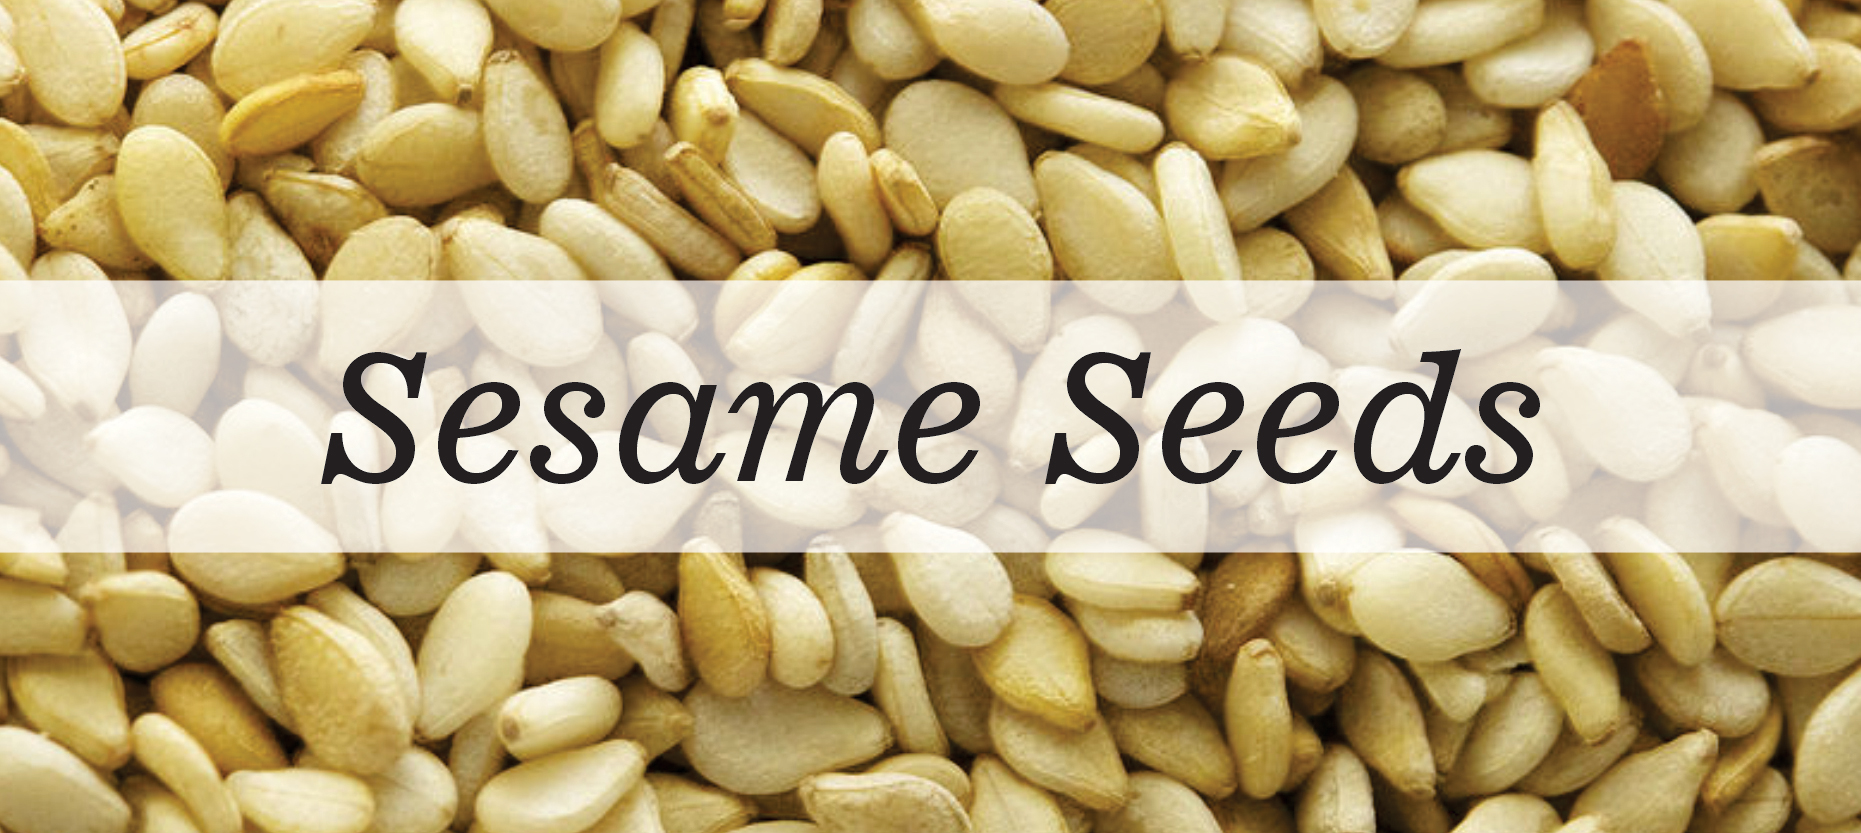 Sesame Seeds – Big nutrition in a small package